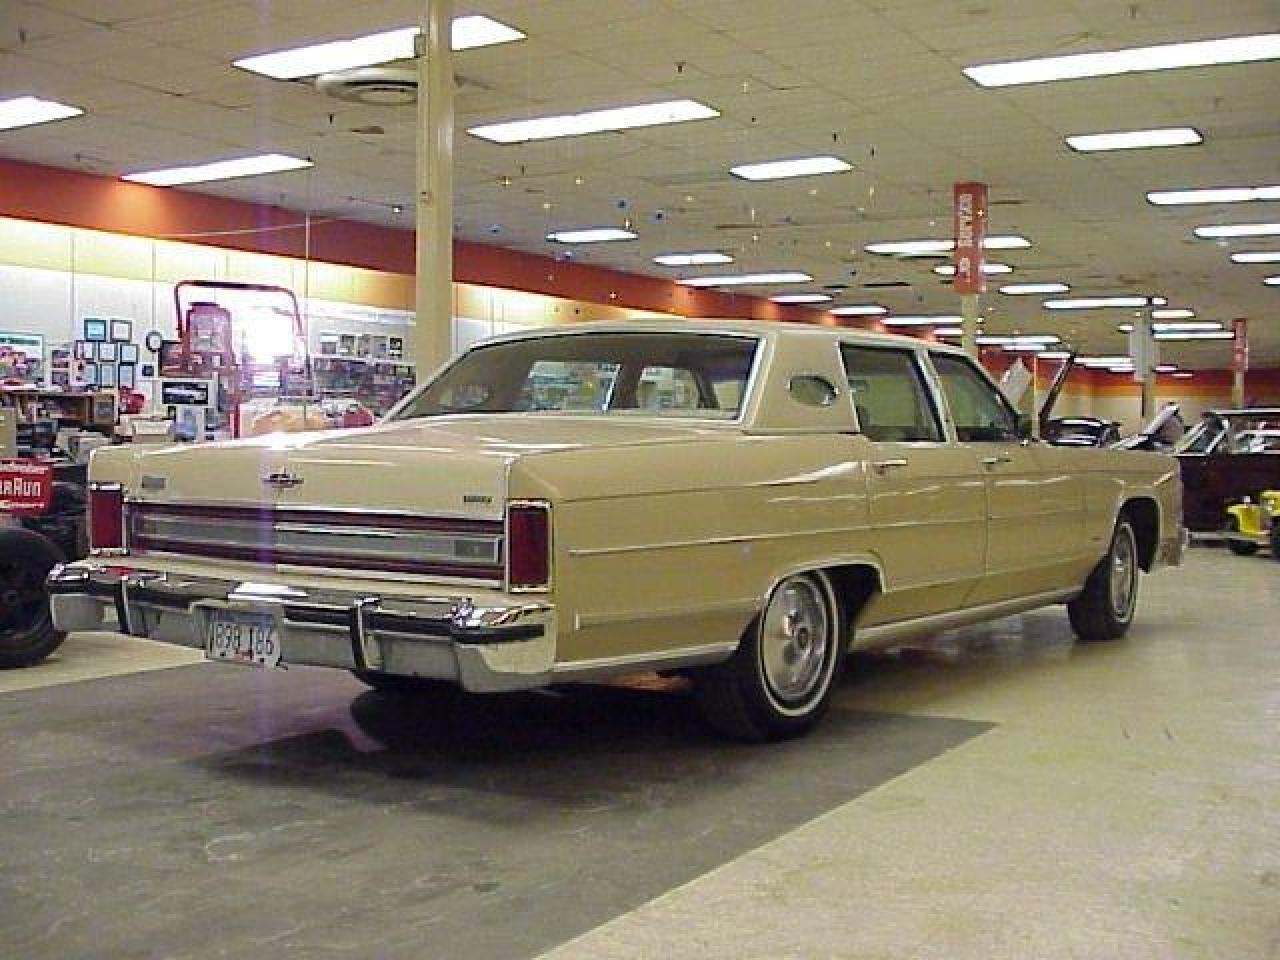 1979 lincoln continental gateway classic cars 1327. Black Bedroom Furniture Sets. Home Design Ideas